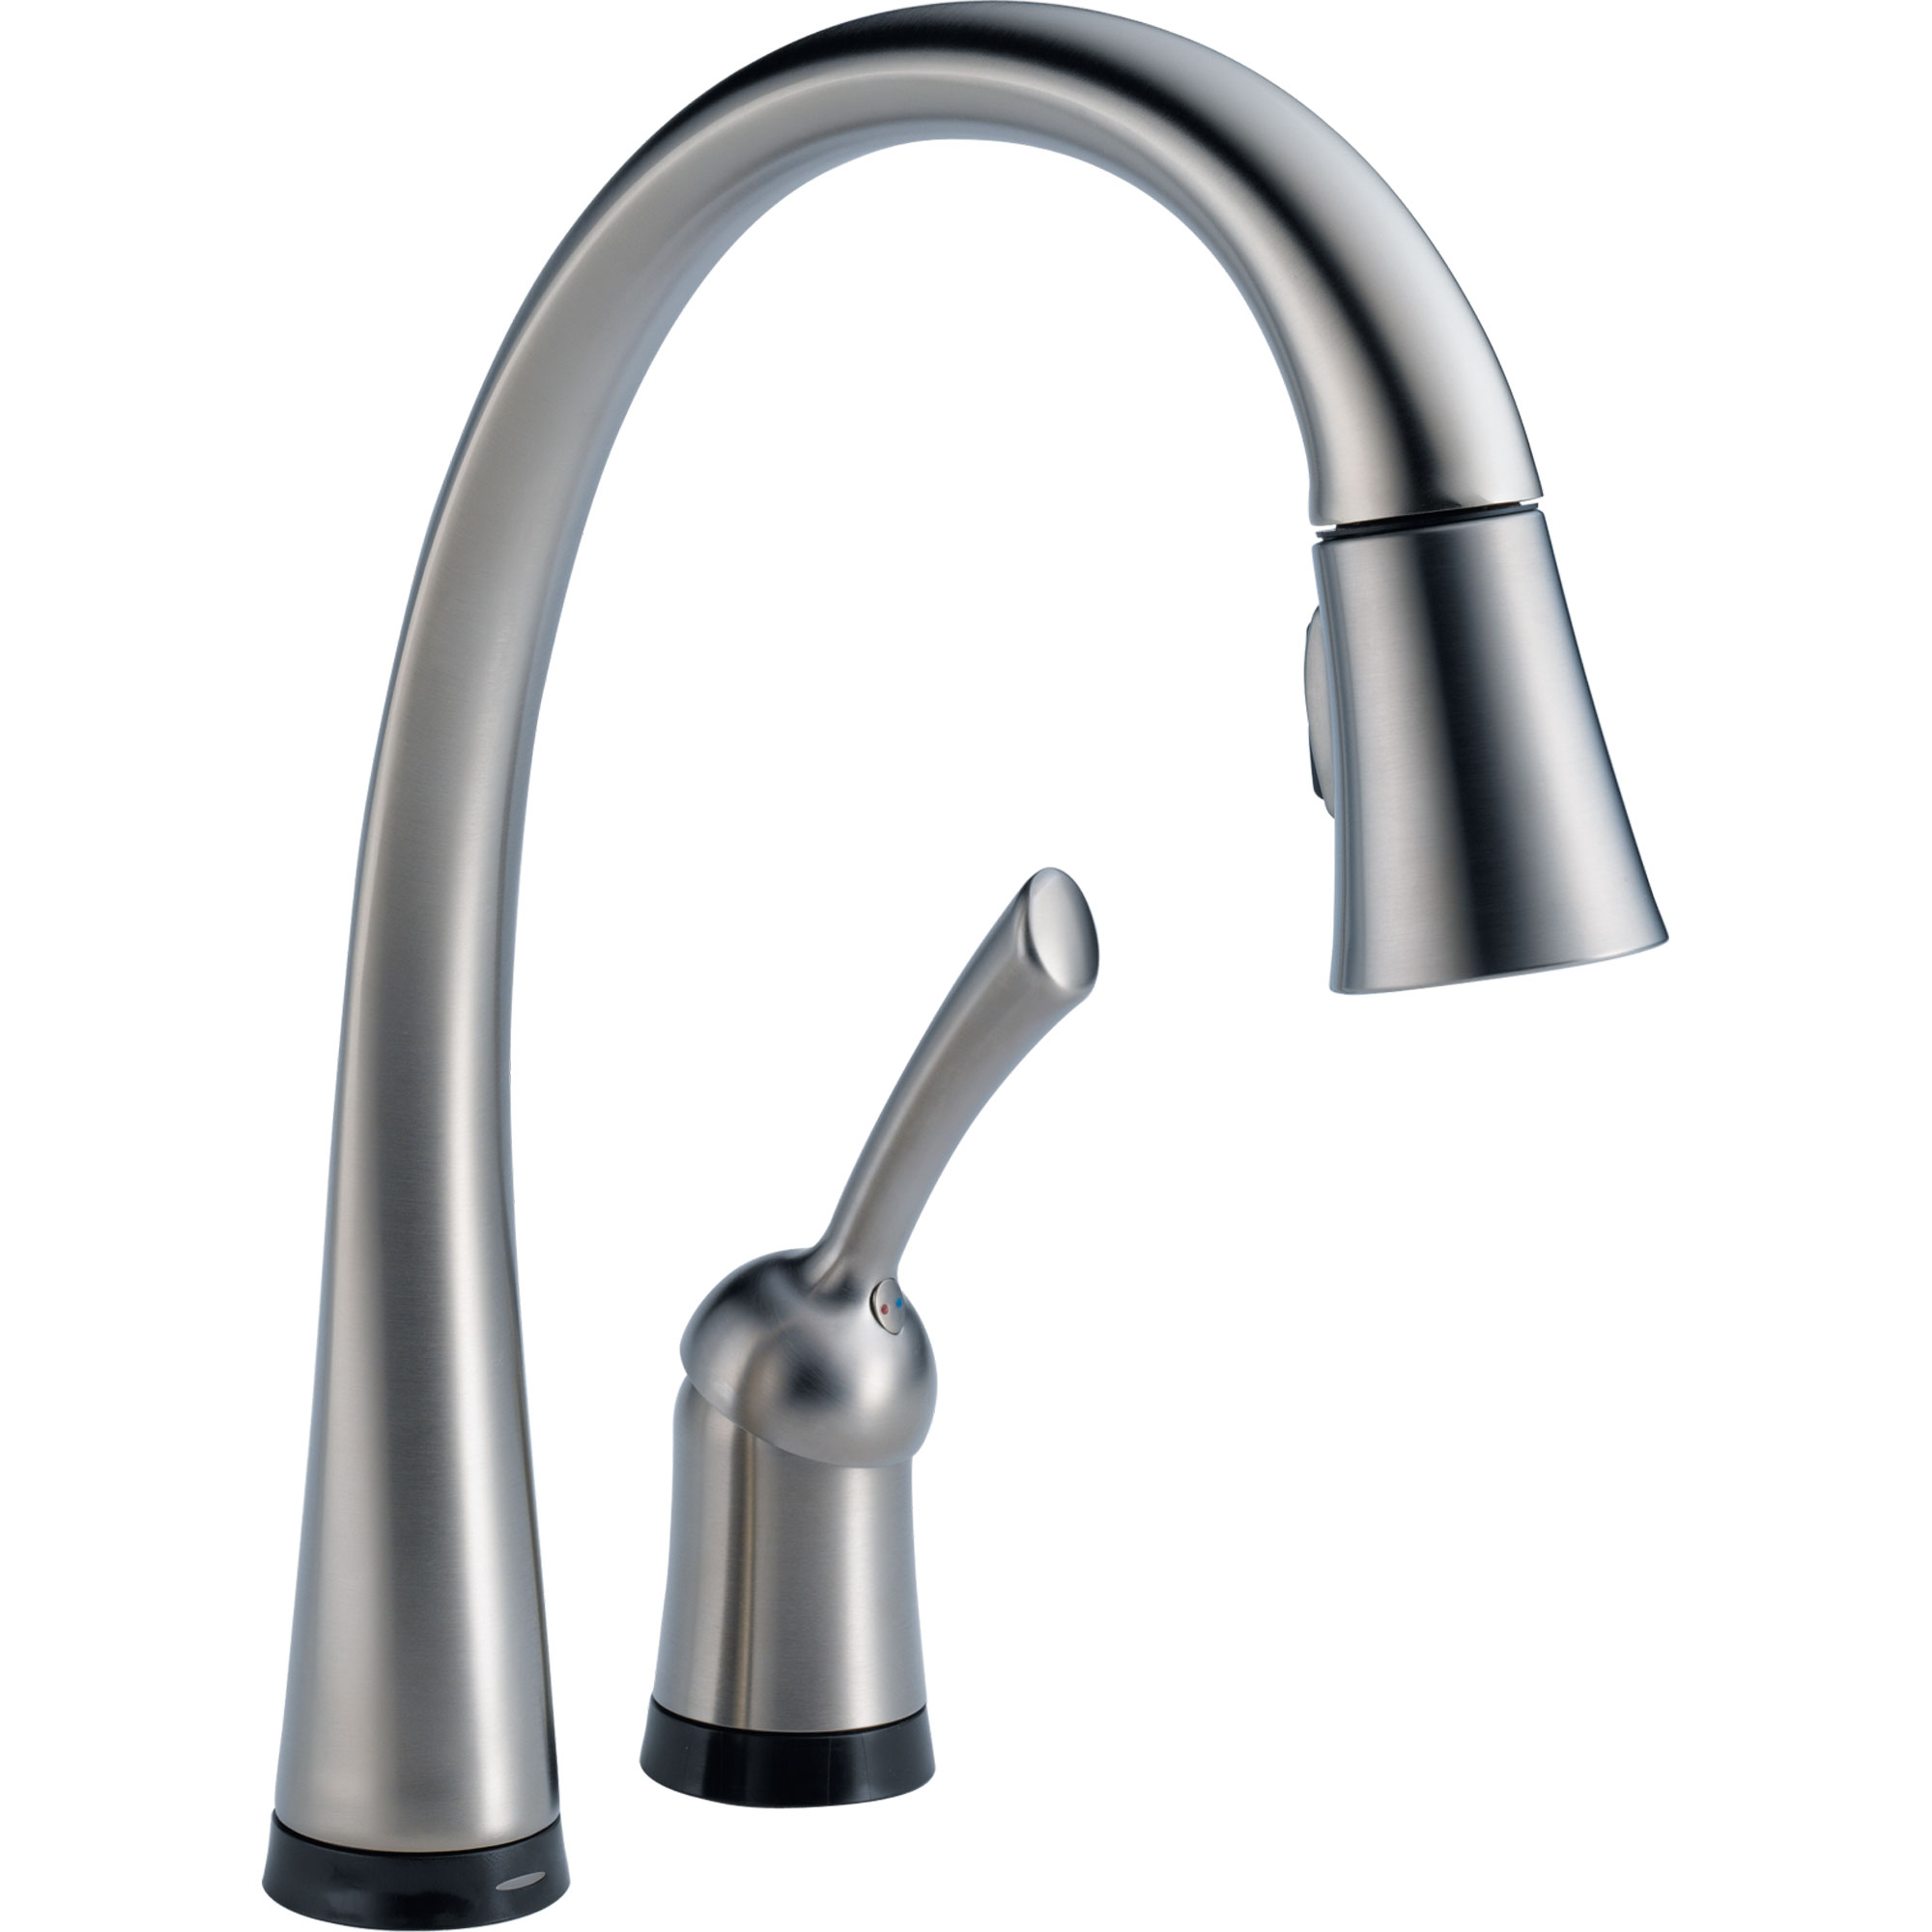 Cool delta cassidy kitchen faucet for kitchen faucet ideas with delta single handle kitchen faucet with spray